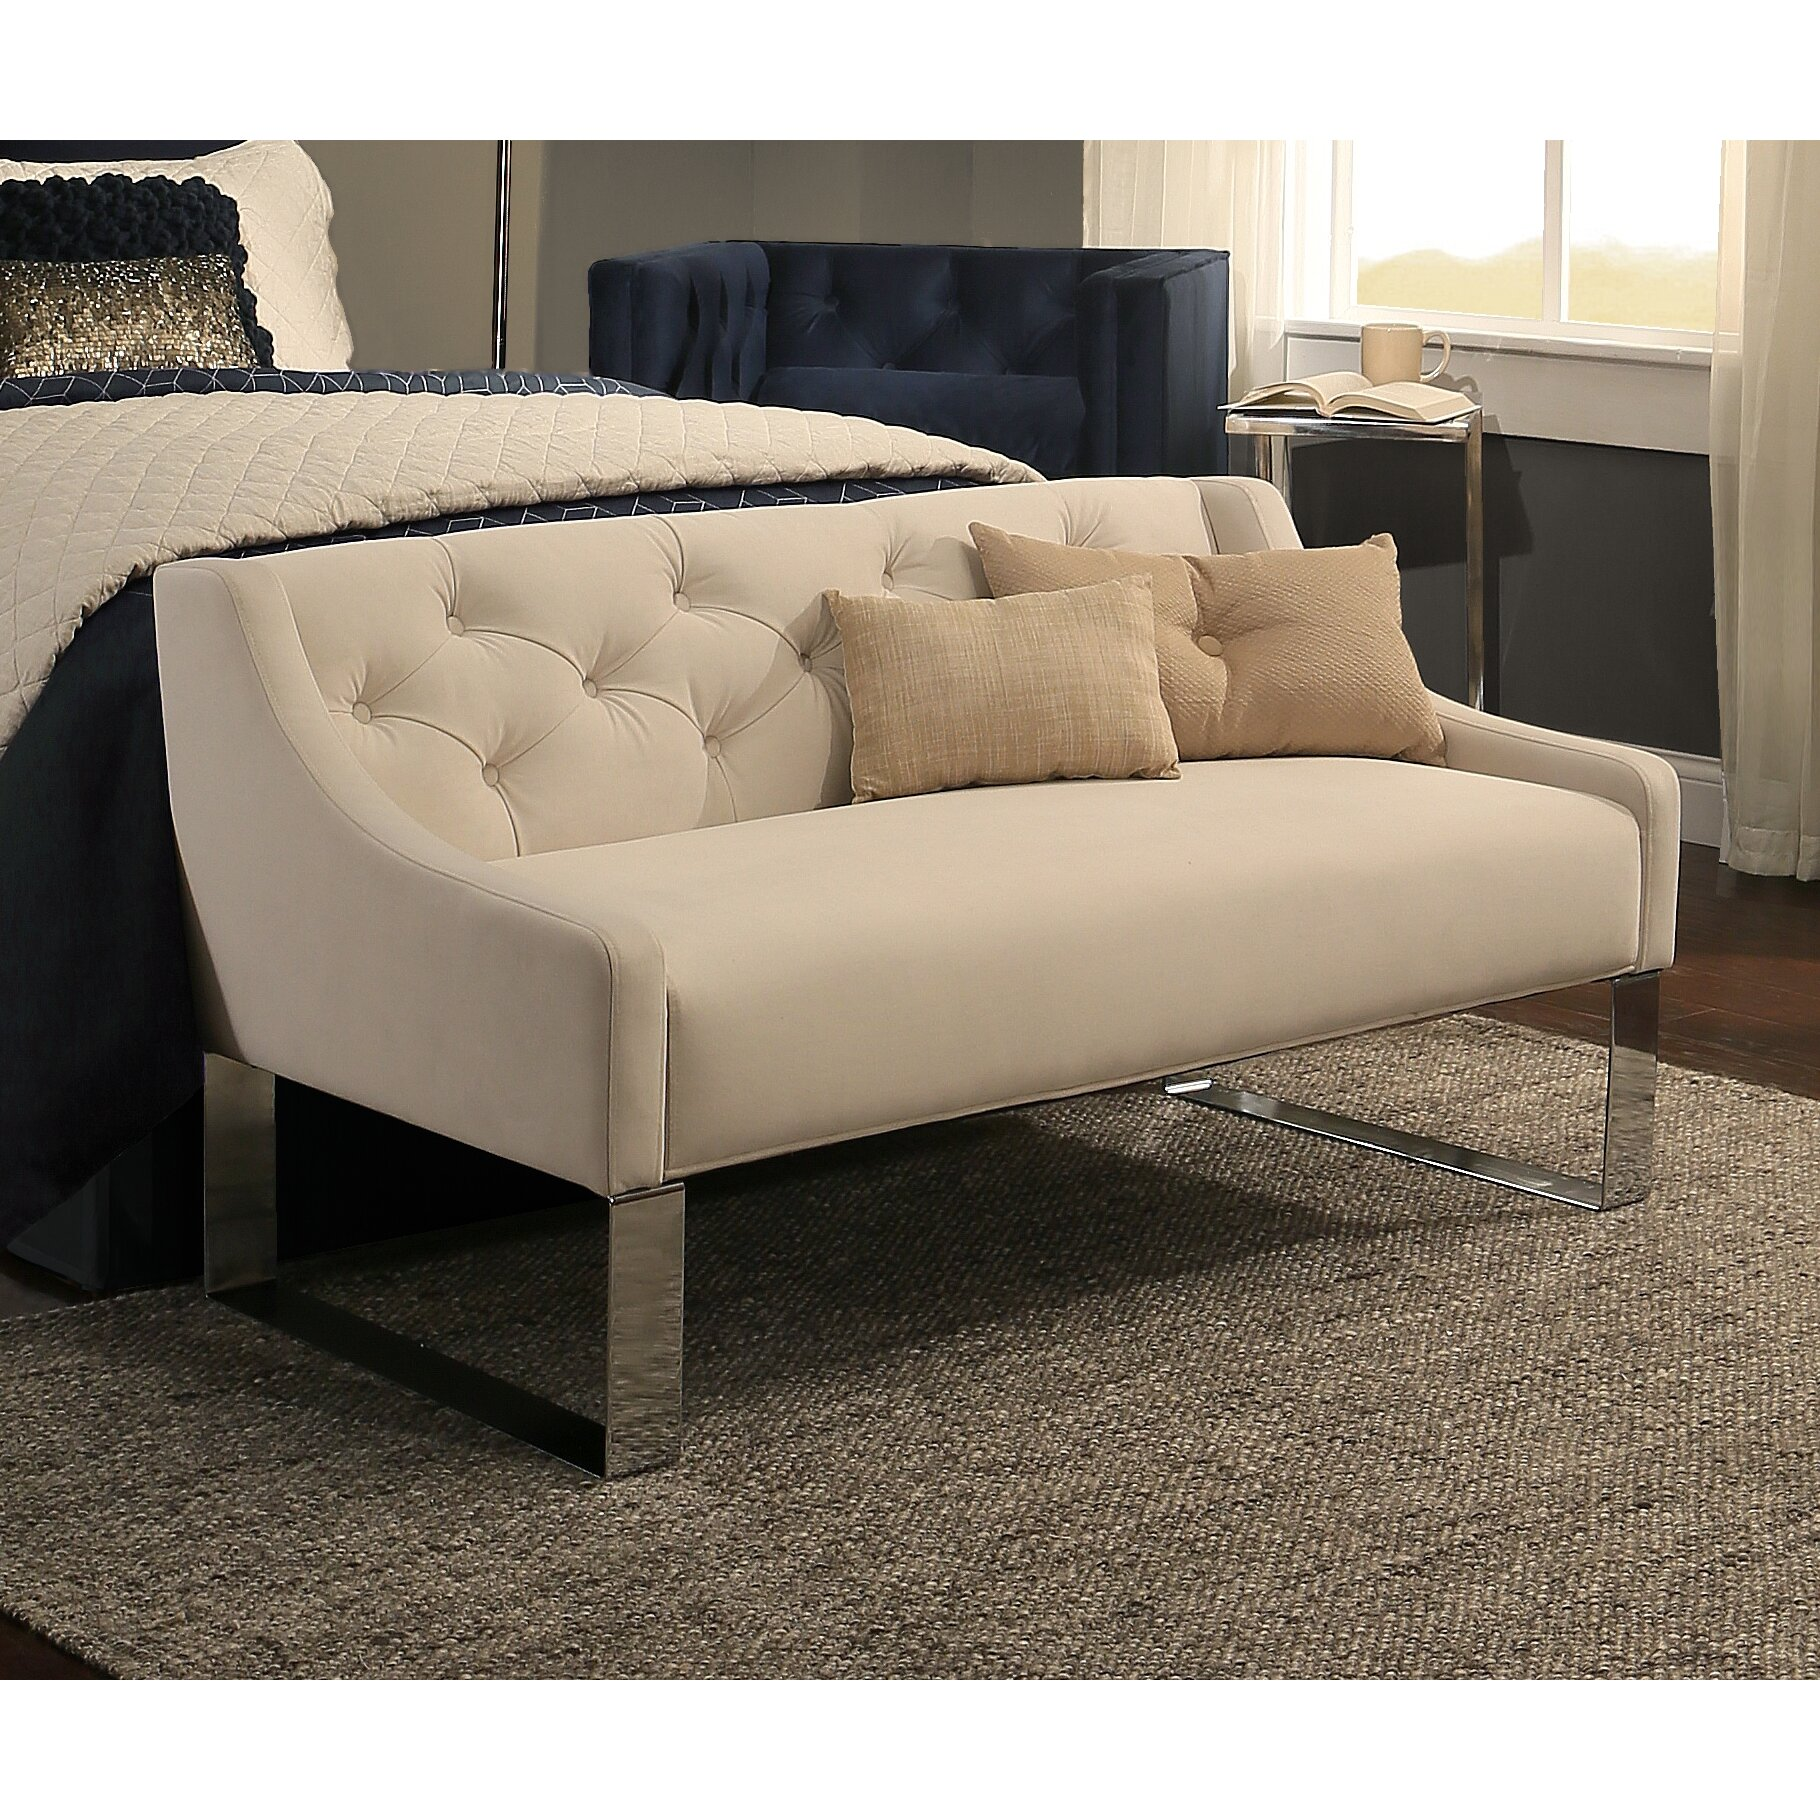 Republicdesignhouse upholstered bedroom bench reviews for Bedroom upholstered bench